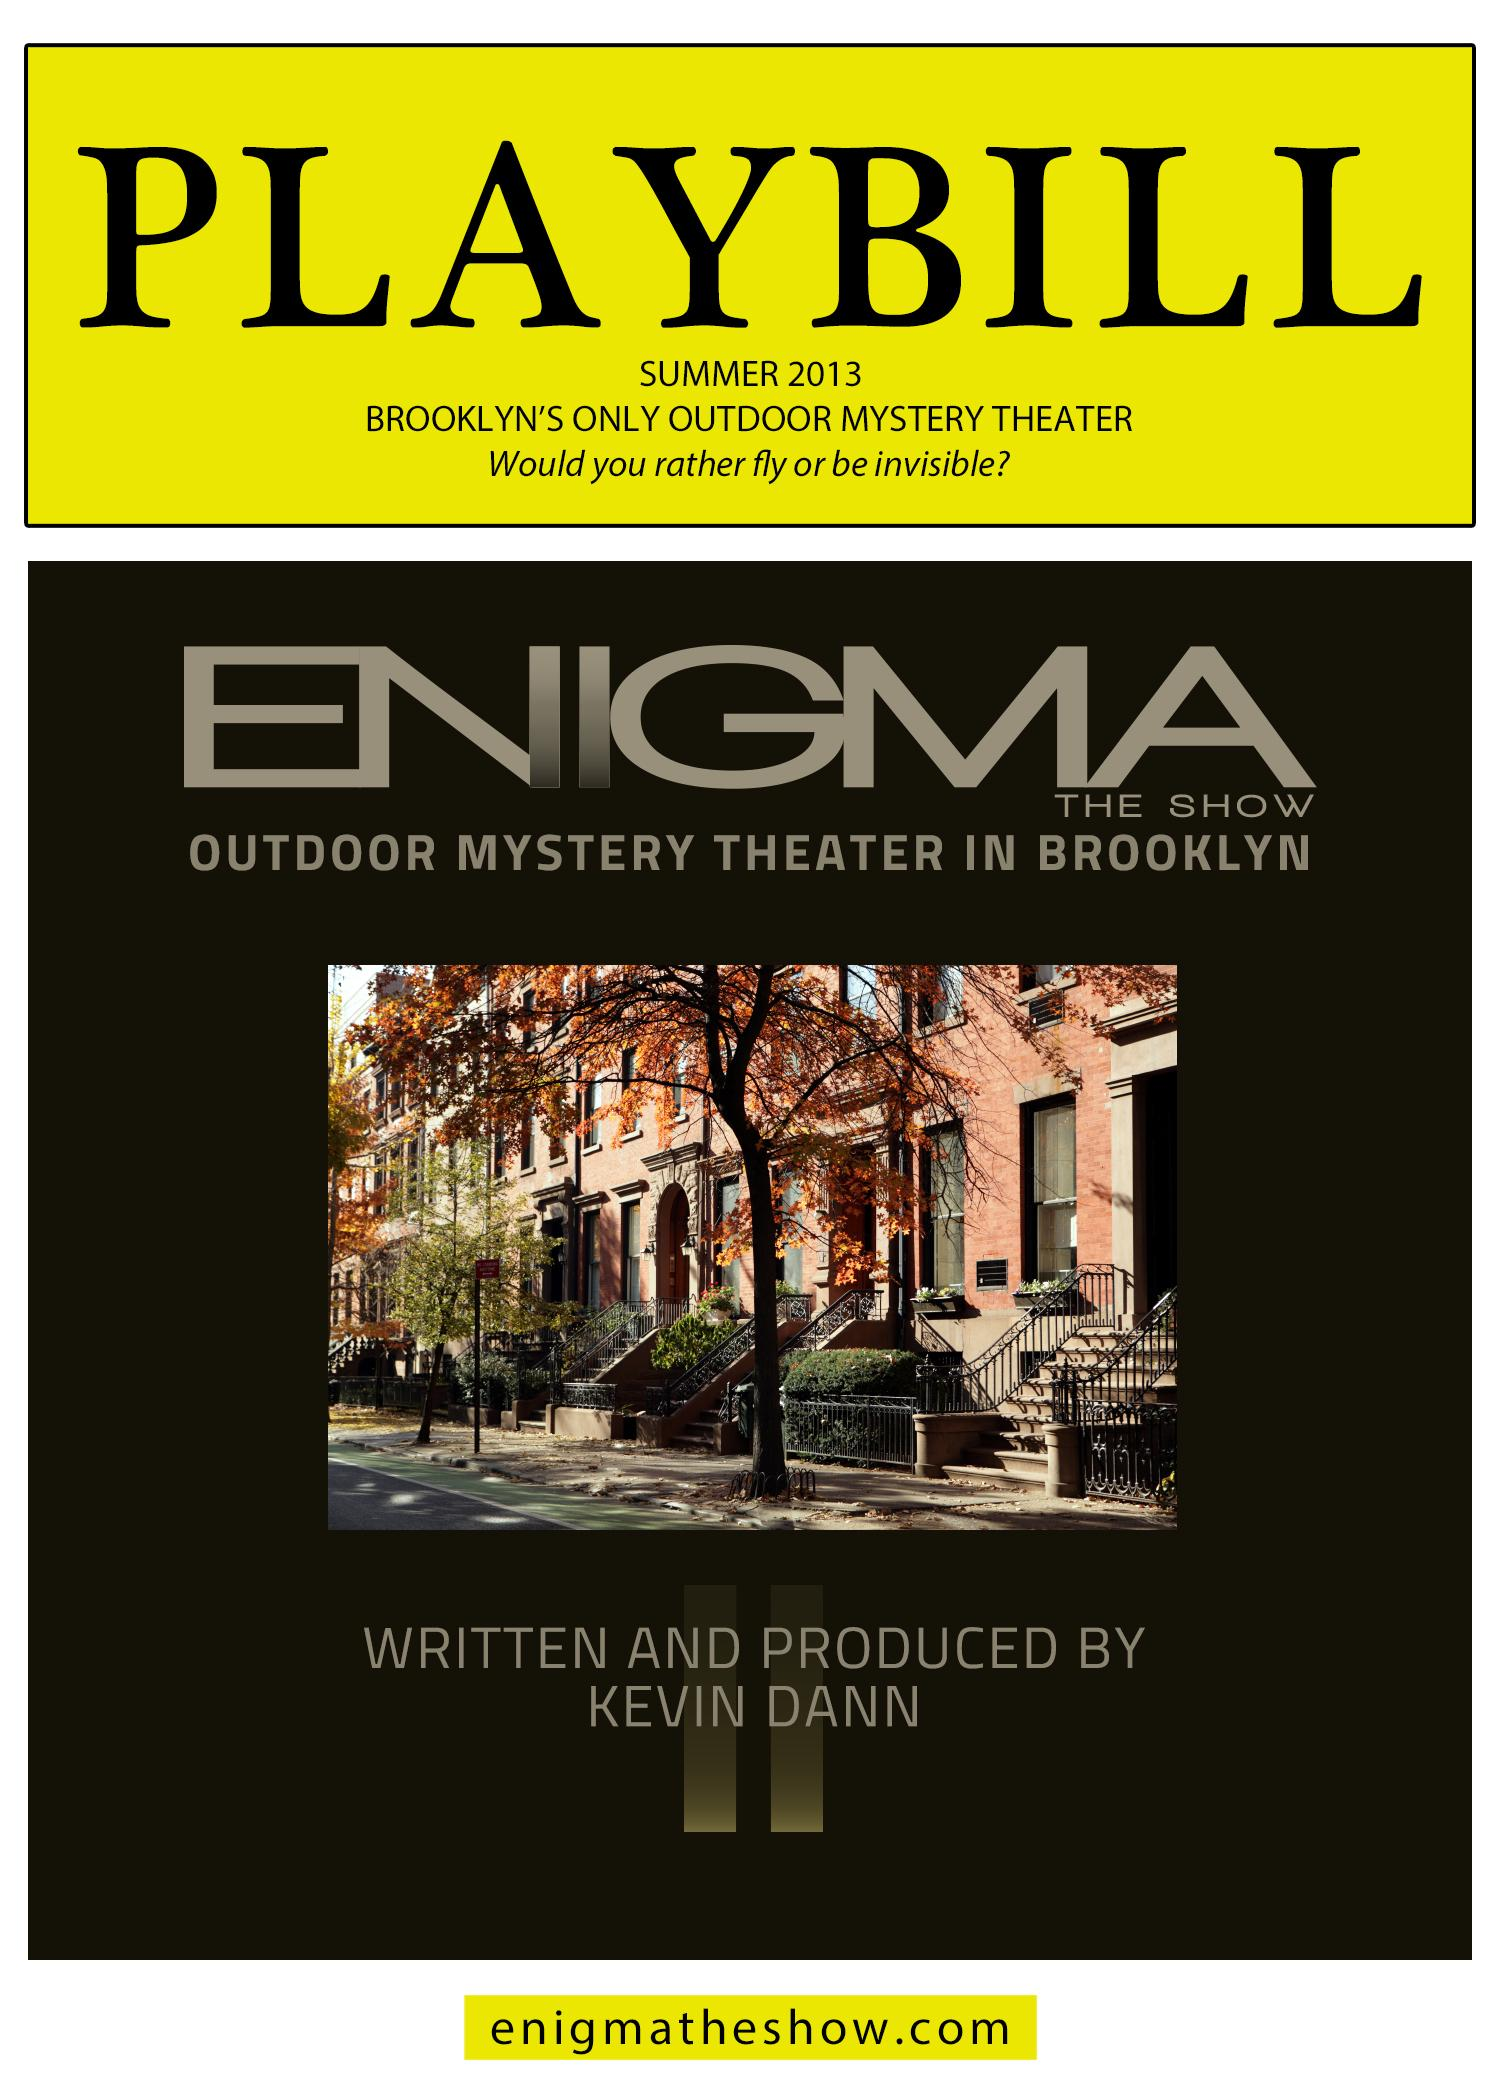 ENIGMA: THE SHOW orientation map - image 3 - student project